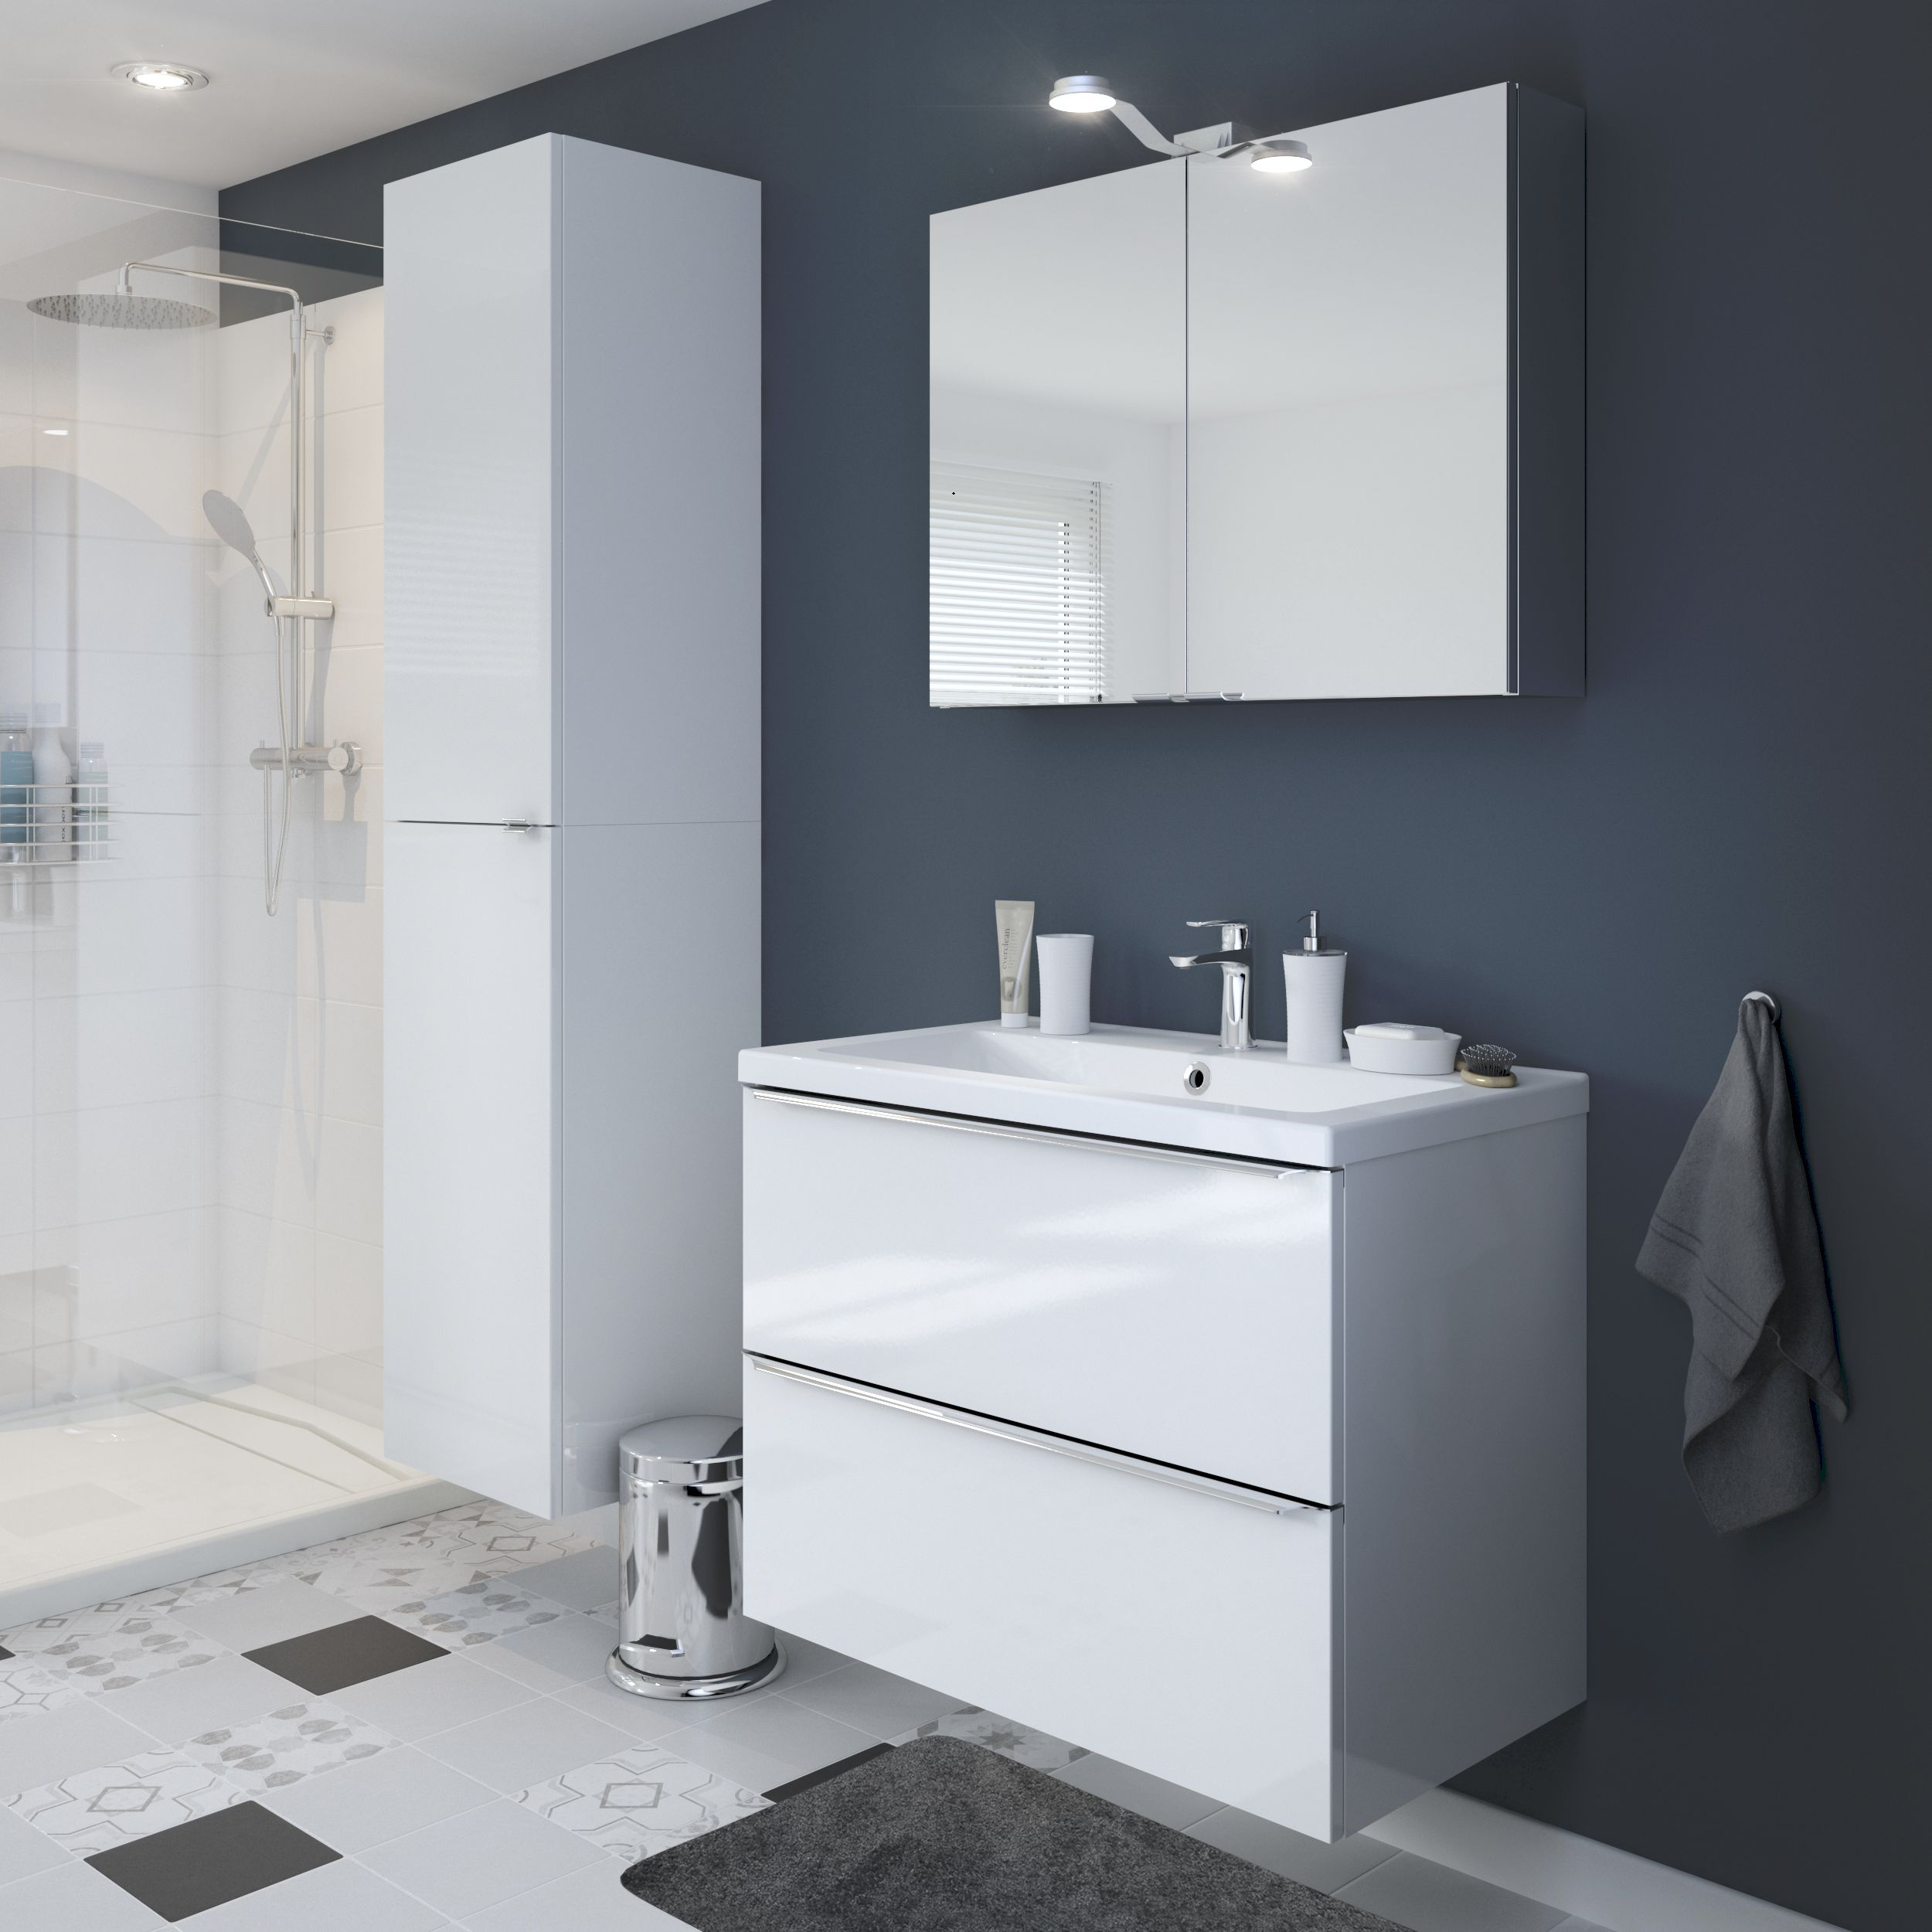 Exceptional Amazing Vetro White Gloss Fitted Bathroom Furniture Roper Rhodes